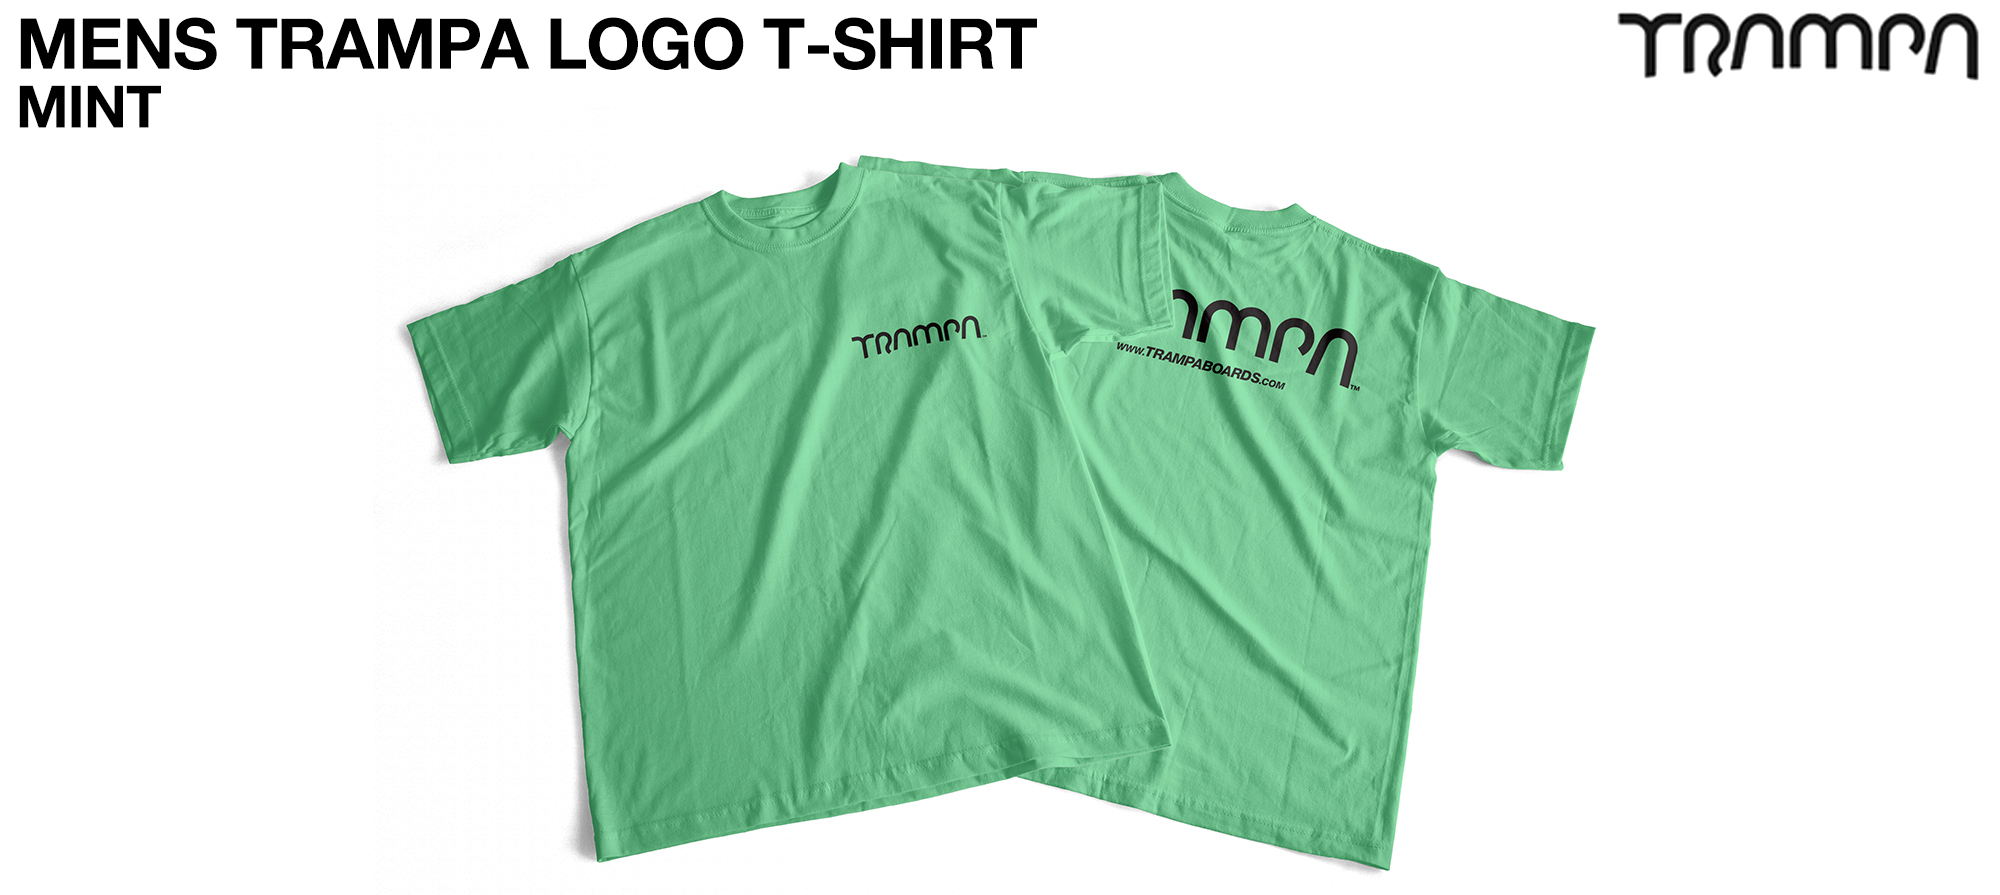 Gildan T  TRAMPA LOGO Mint - CUSTOM (COPY)